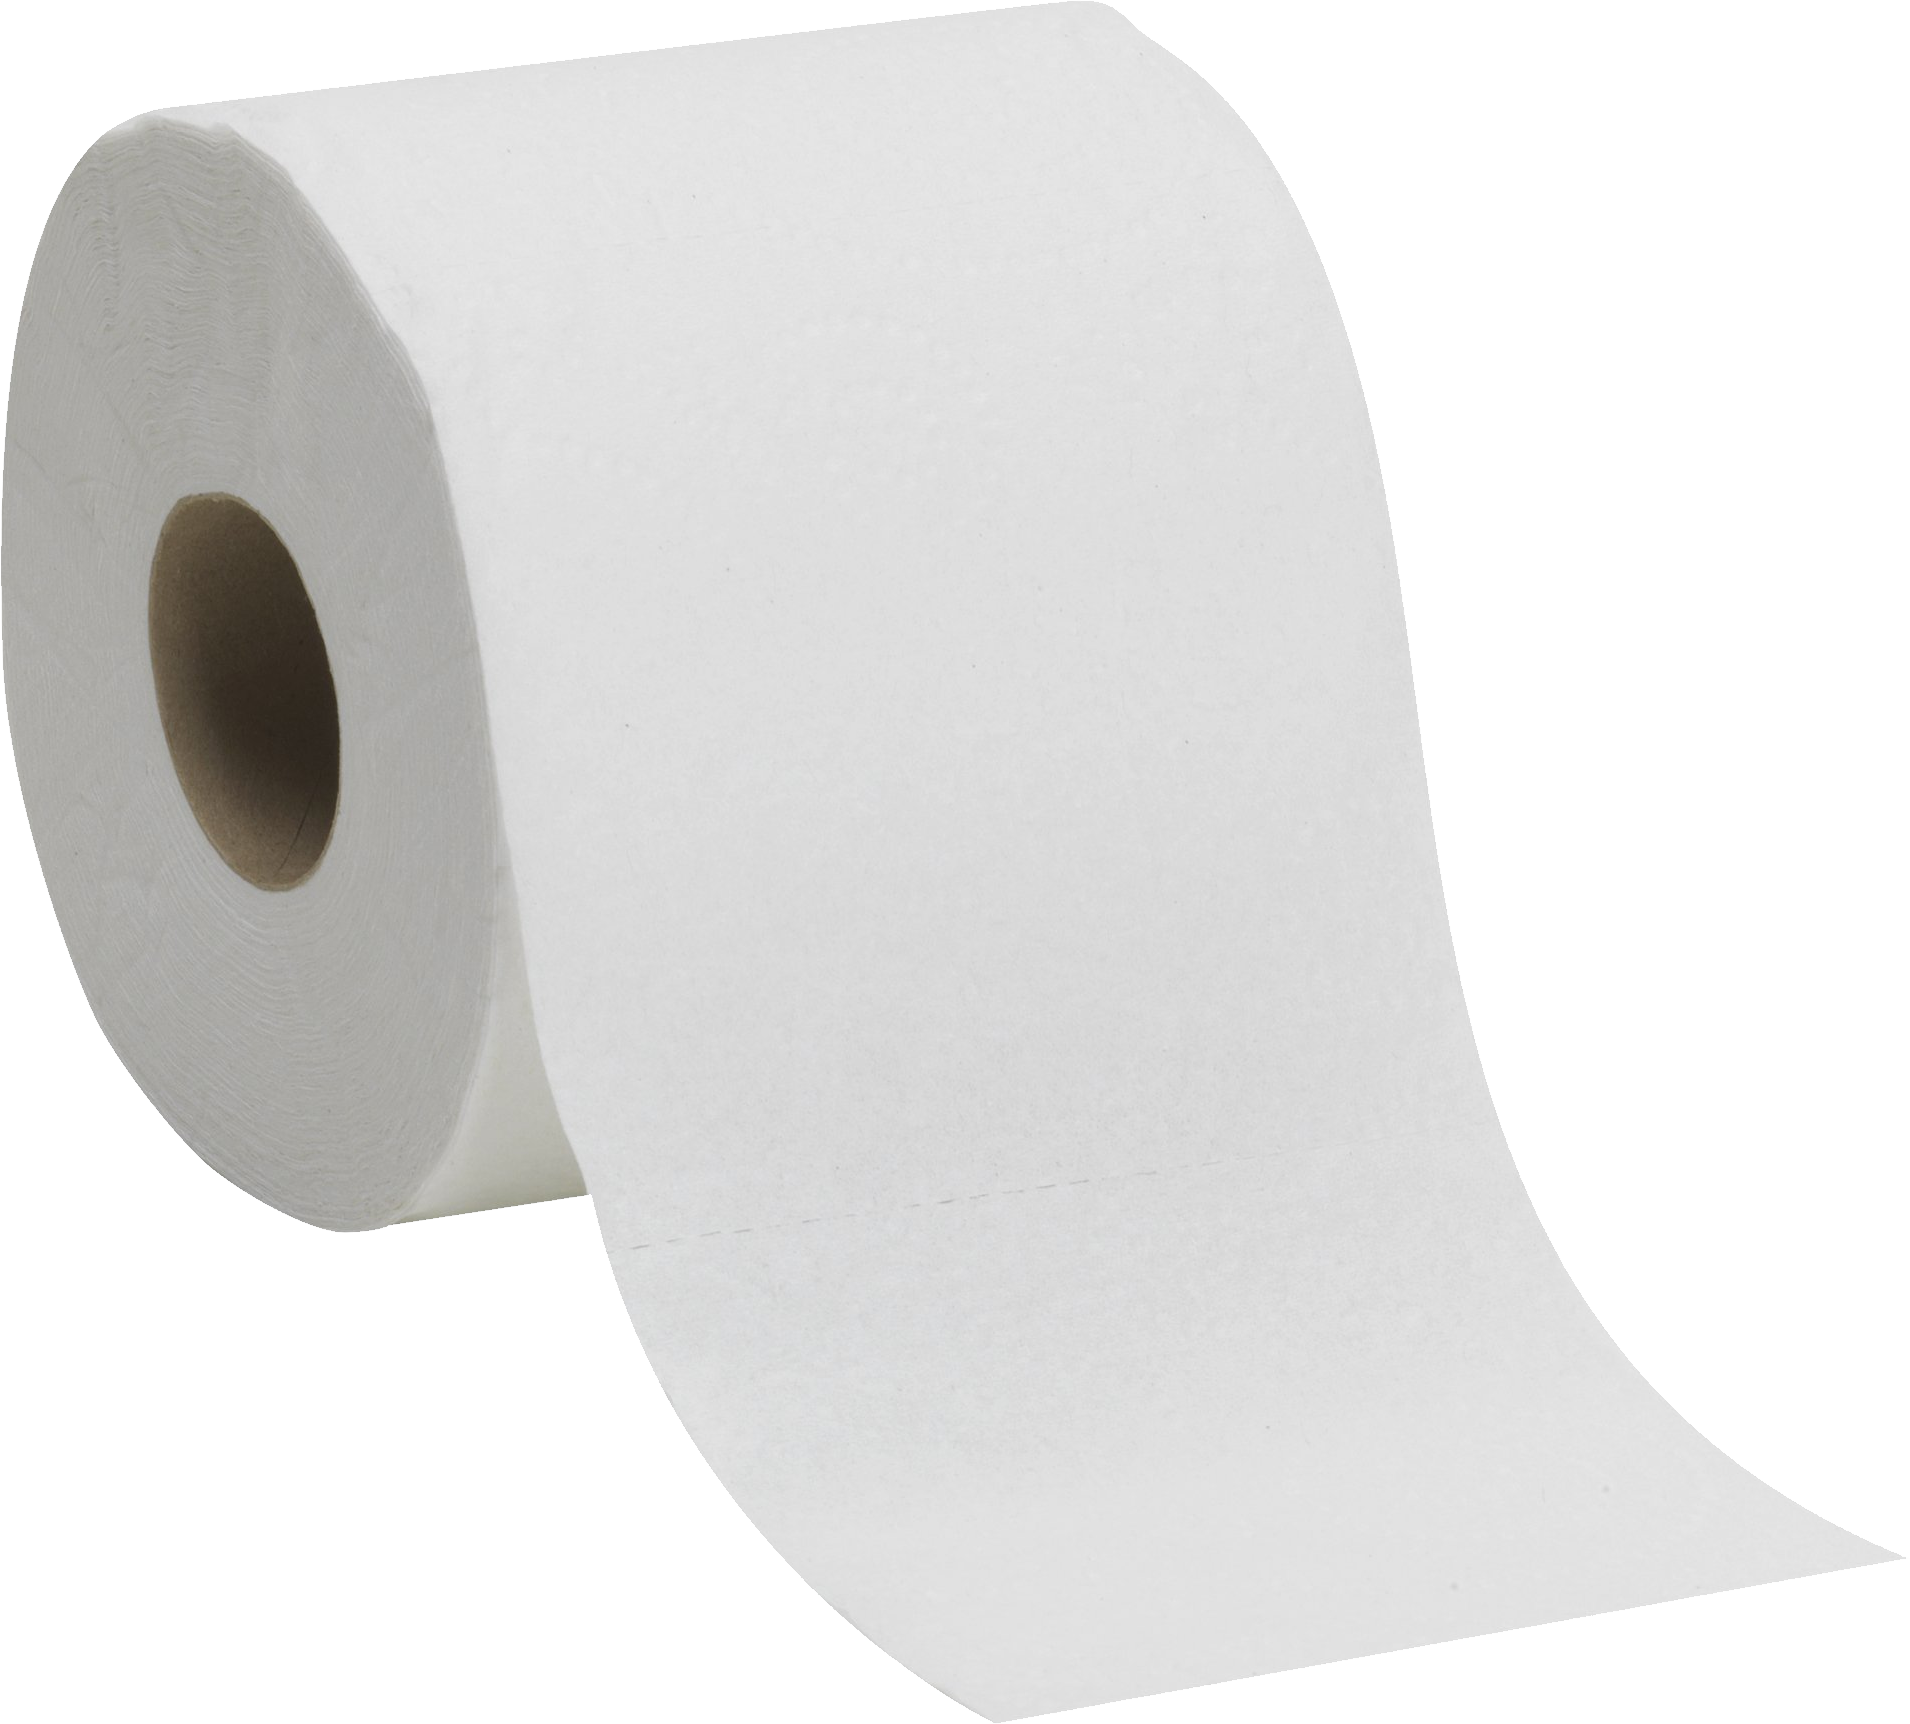 Toilet paper PNG